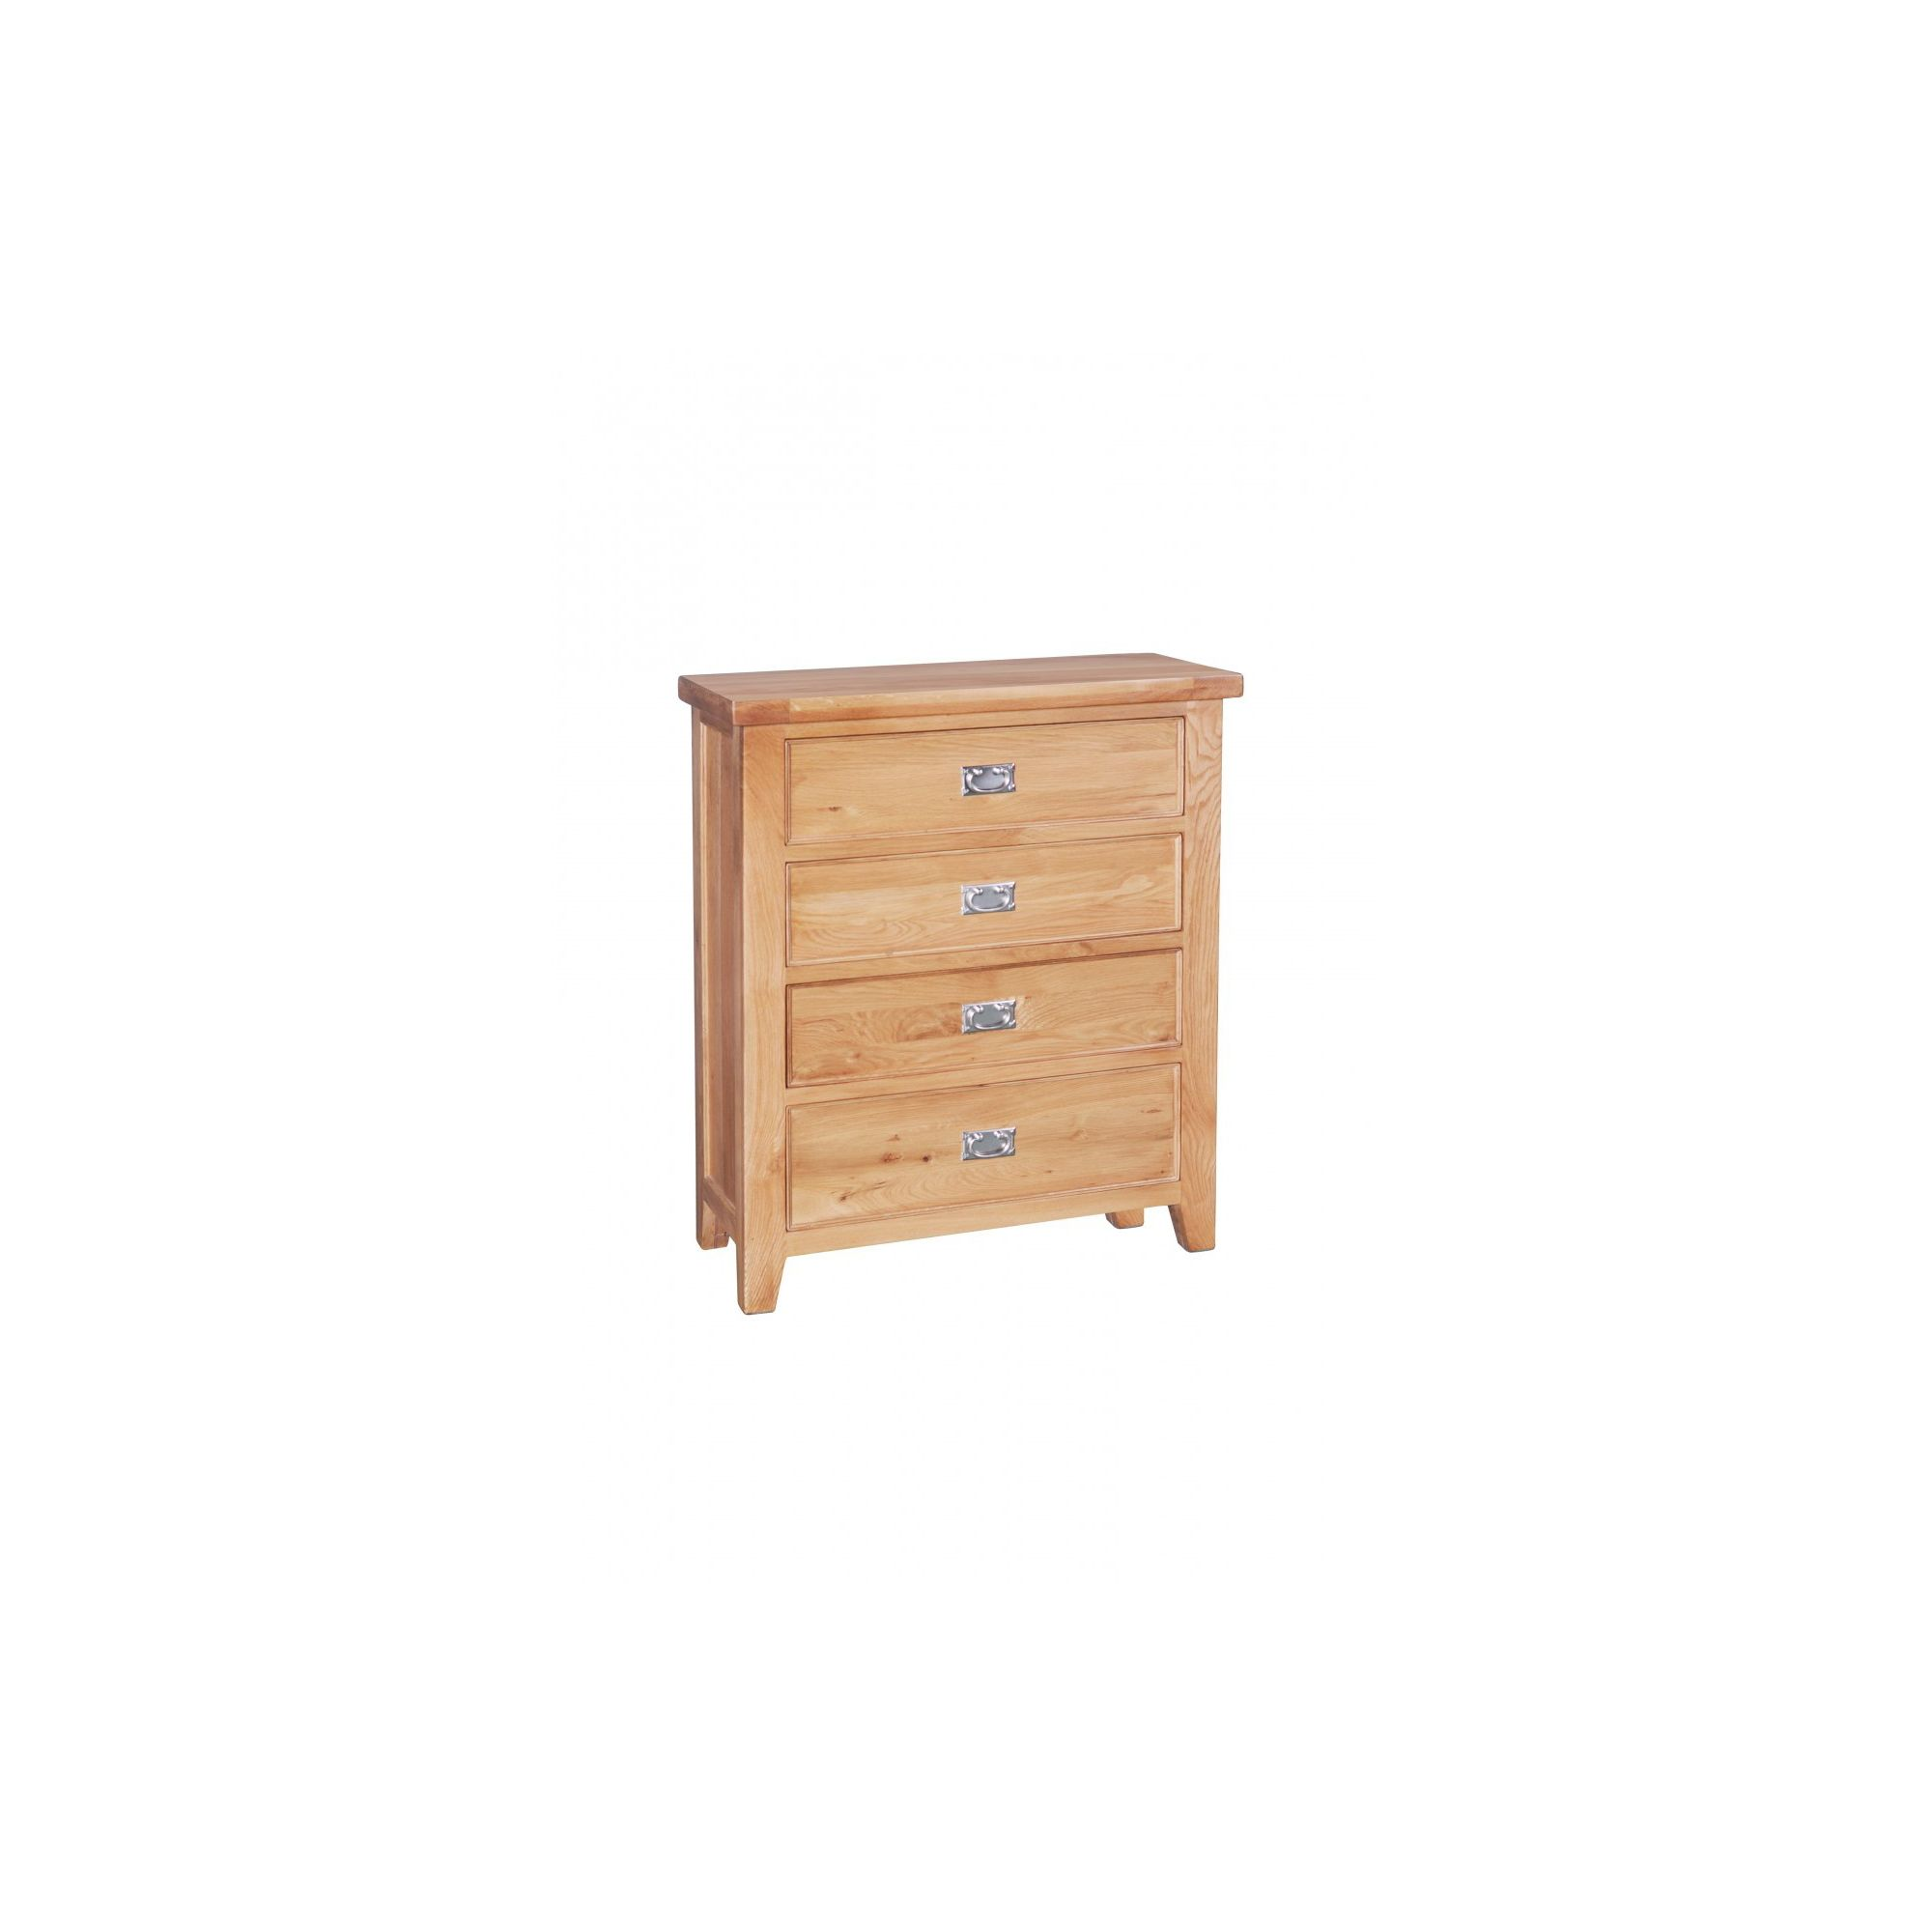 Hawkshead Elegance 4 Drawer Tallboy Chest at Tesco Direct